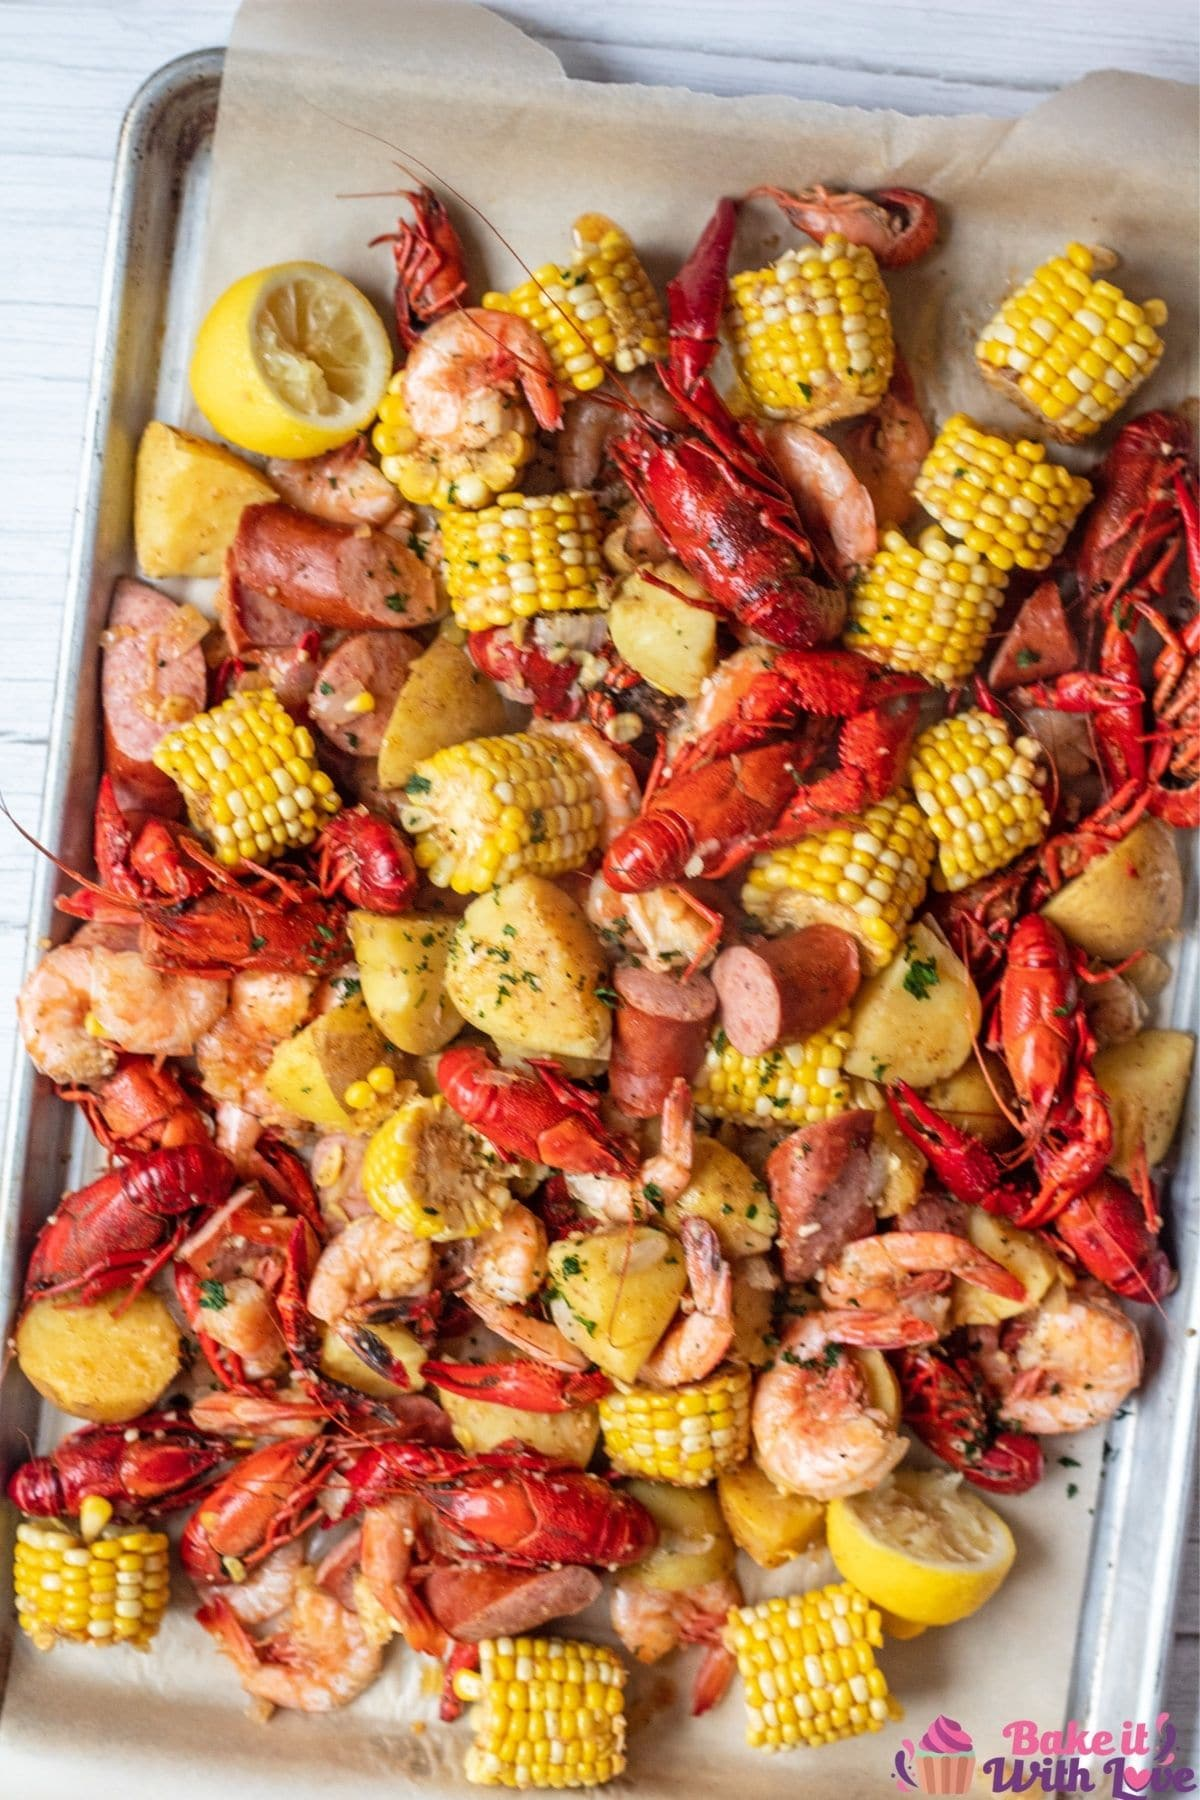 Tall overhead image of the cooked Cajun seafood boil.